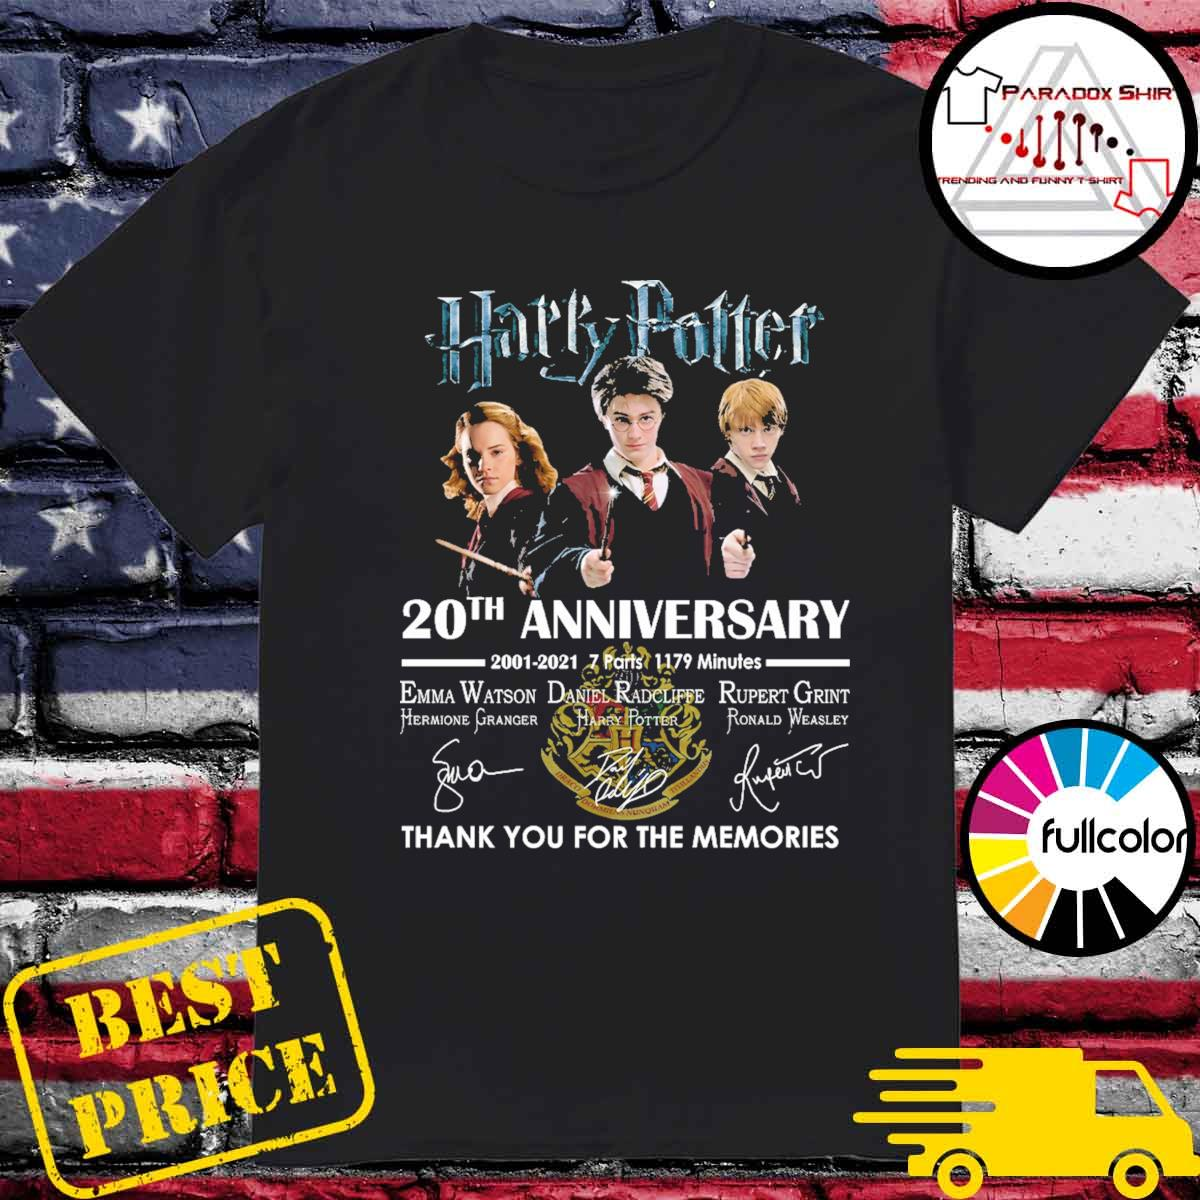 Harry Potter 20th Anniversary 2001 2021 7 parts 1179 minutes signatures thank you for the memories shirt